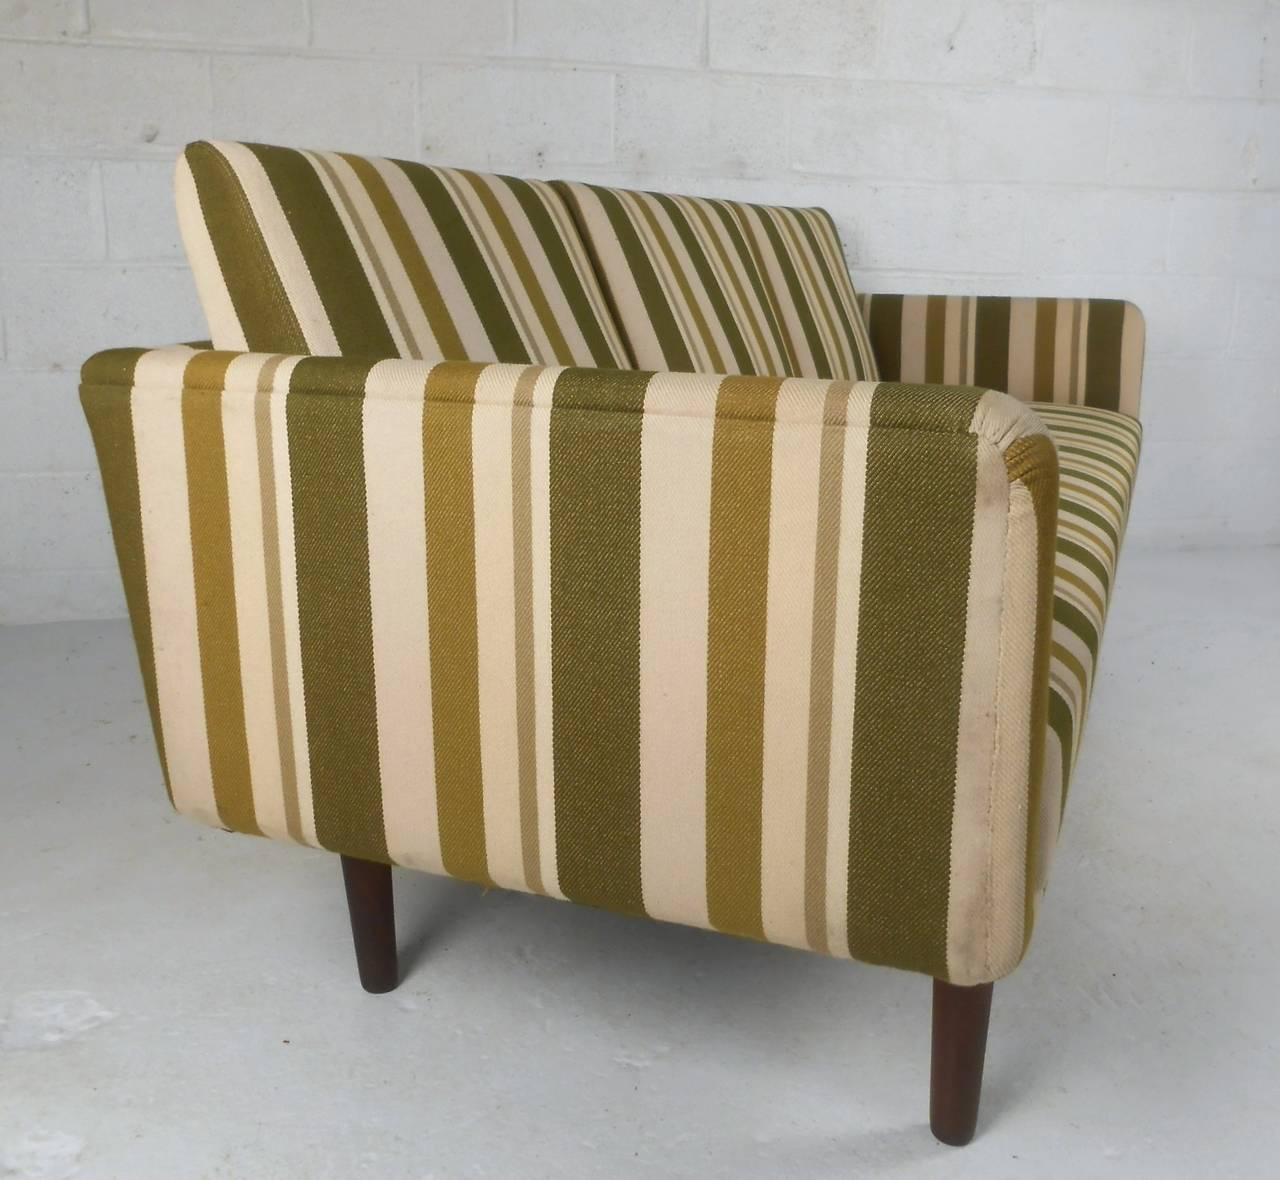 Large Danish Modern Sofa after Børge Mogensen In Good Condition For Sale In Brooklyn, NY